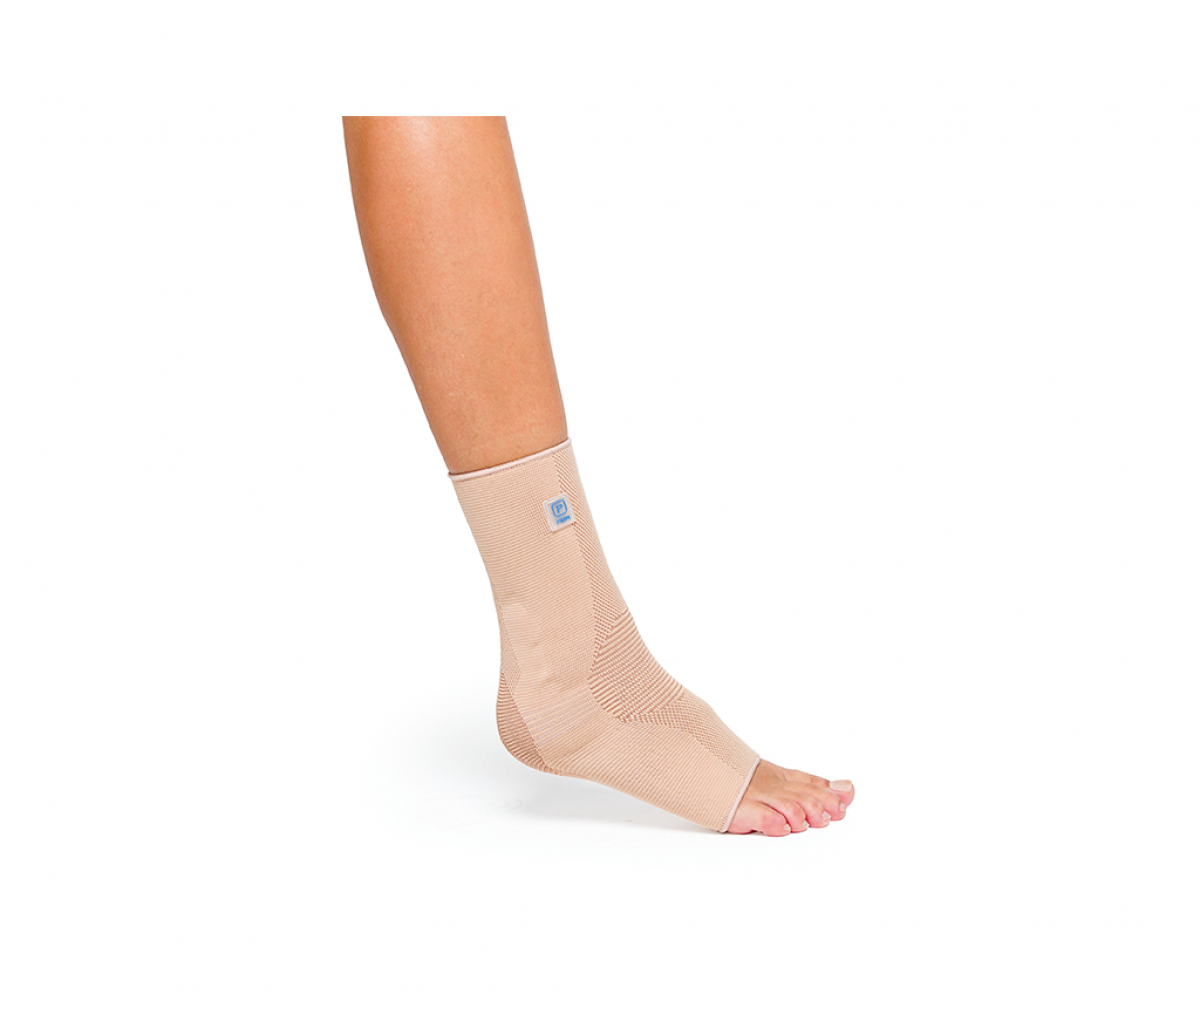 AQTIVO ANKLE BRACE WITH SILICONE INSERT - L P705BG